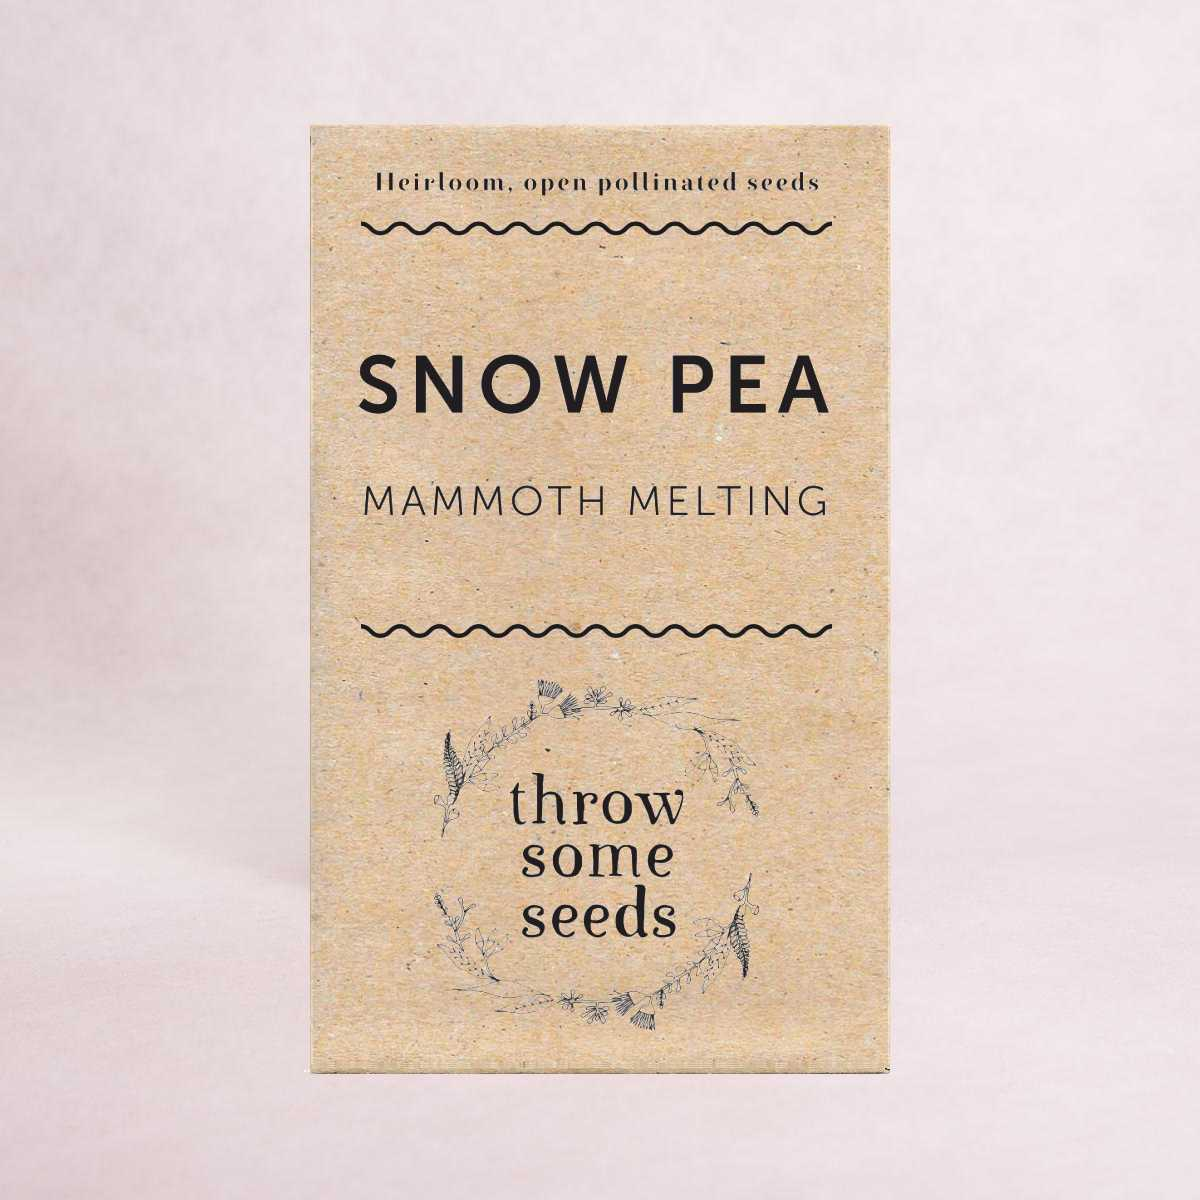 Snow Pea (Mammoth Melting) Seeds - Seeds - Throw Some Seeds - Australian gardening gifts and eco products online!